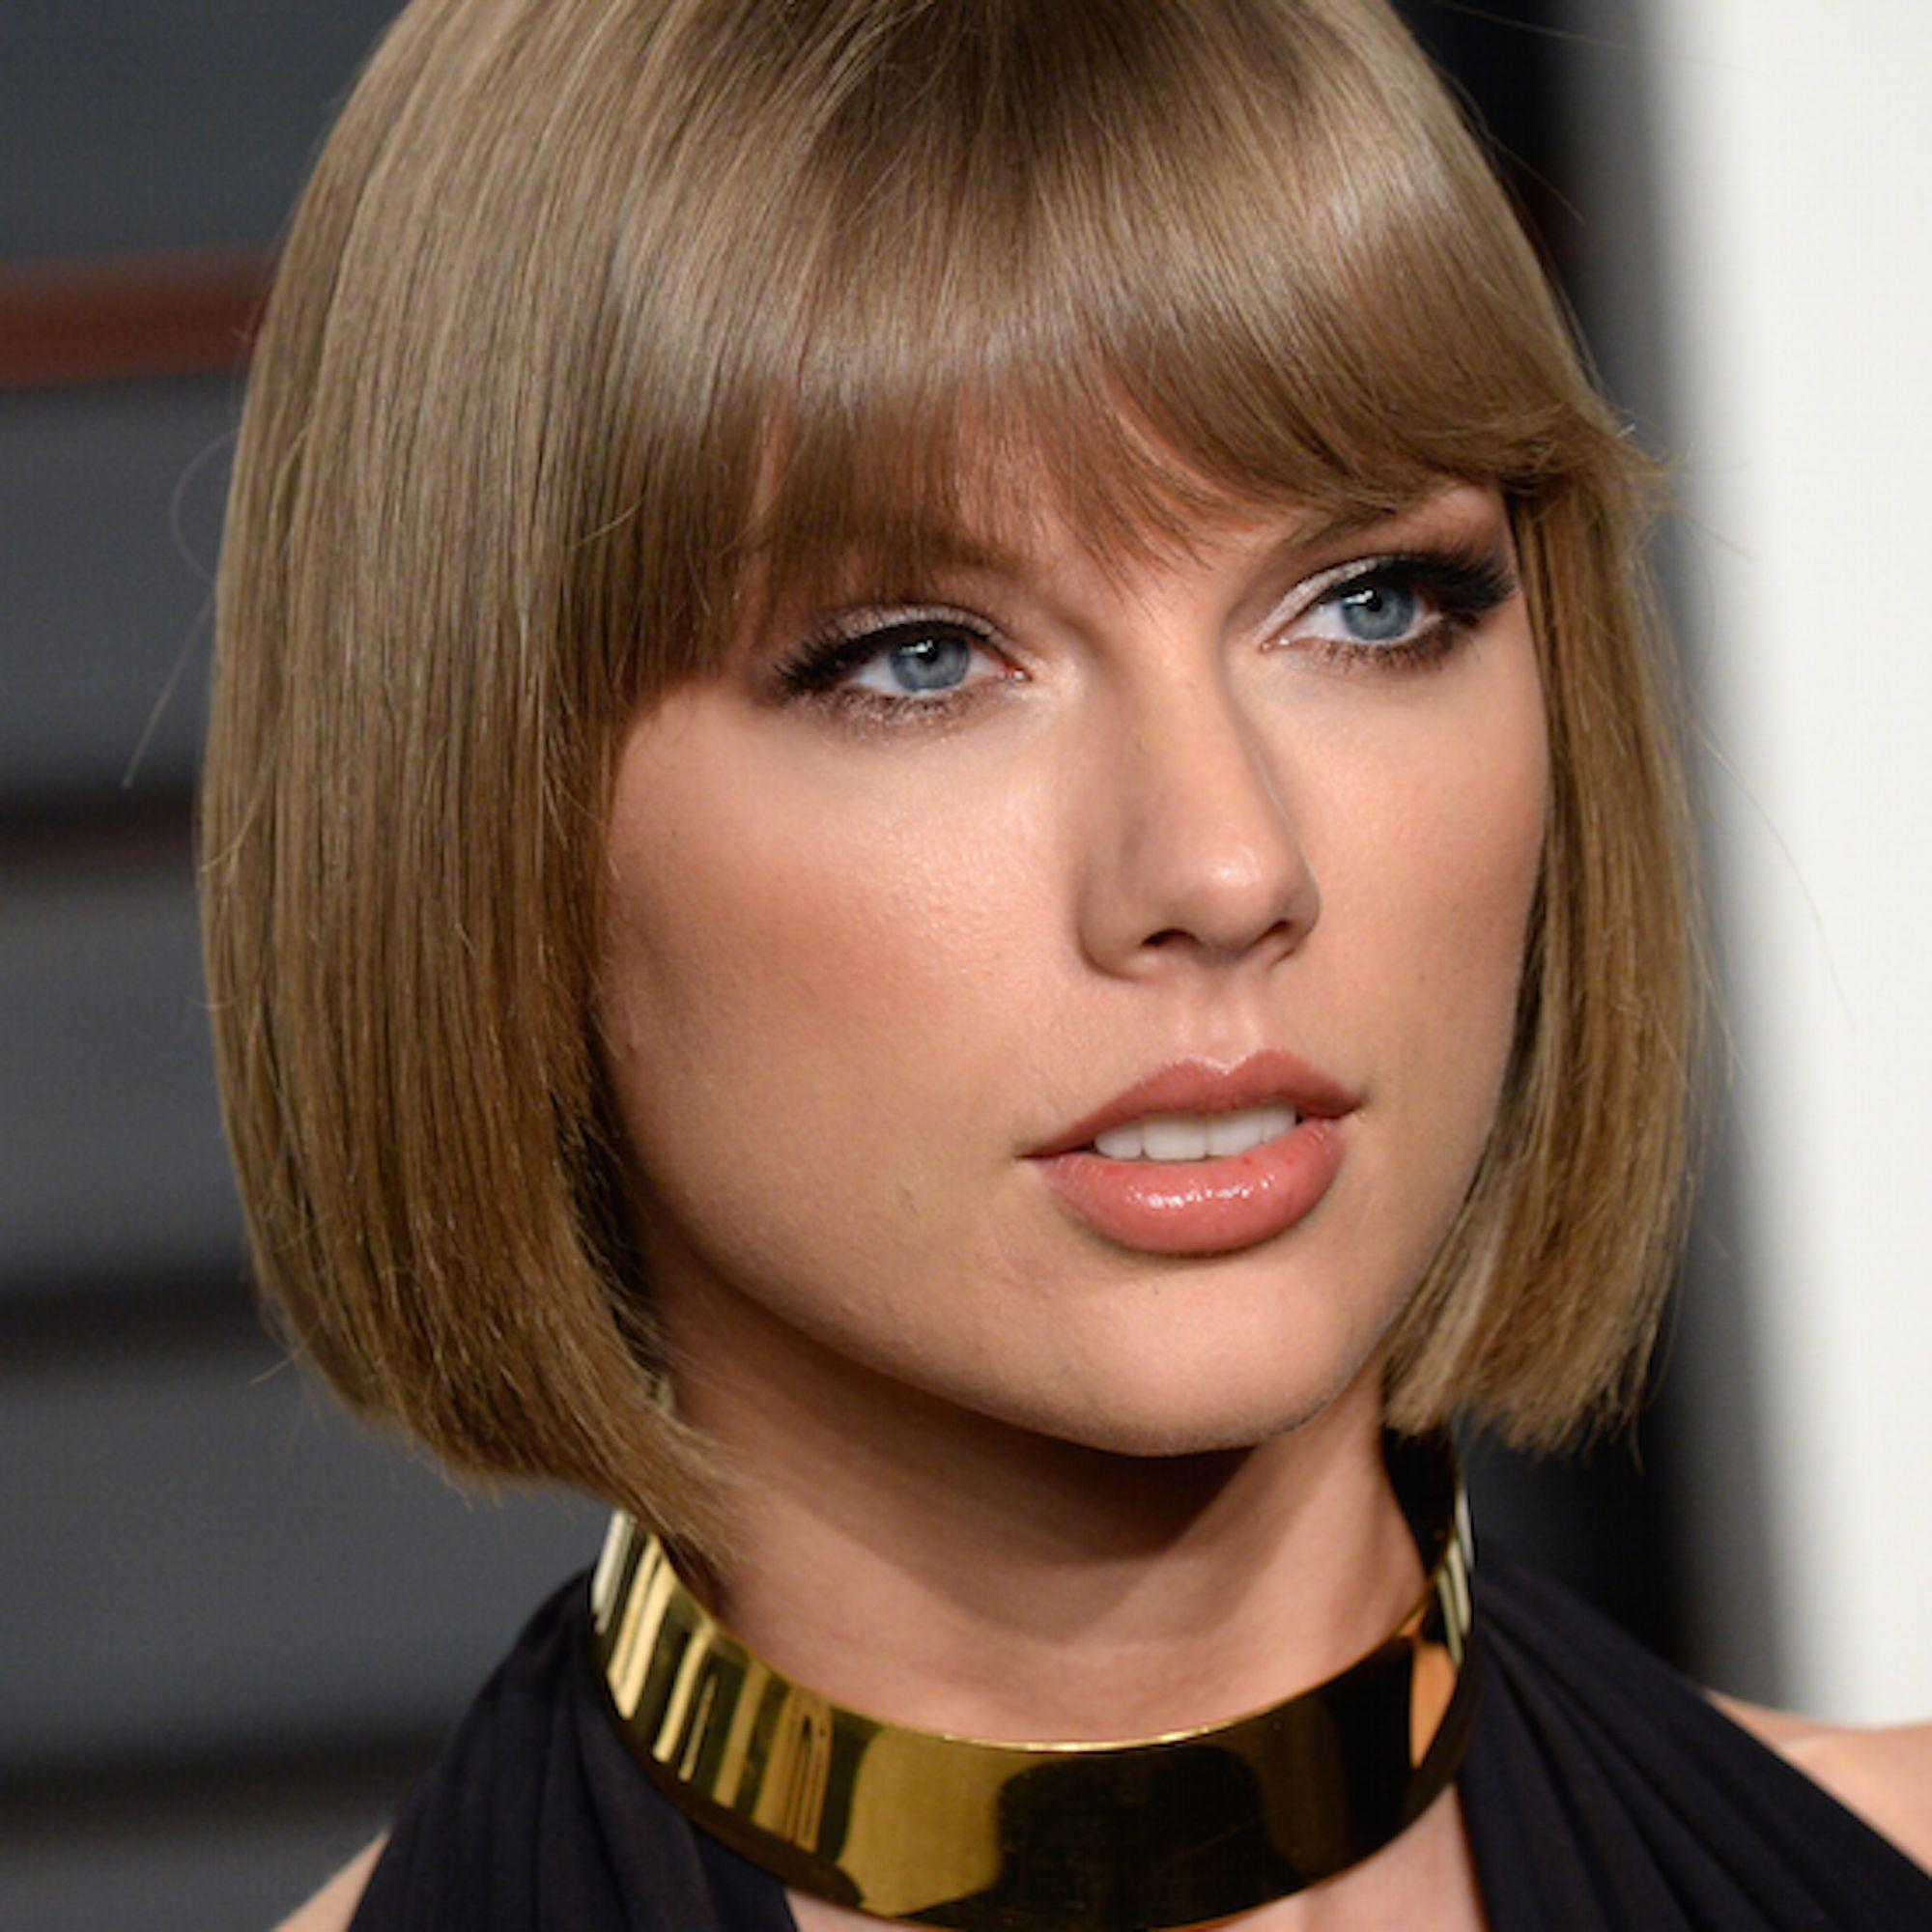 Taylor Swift Eats Sh T While Running Rapping On The Treadmill